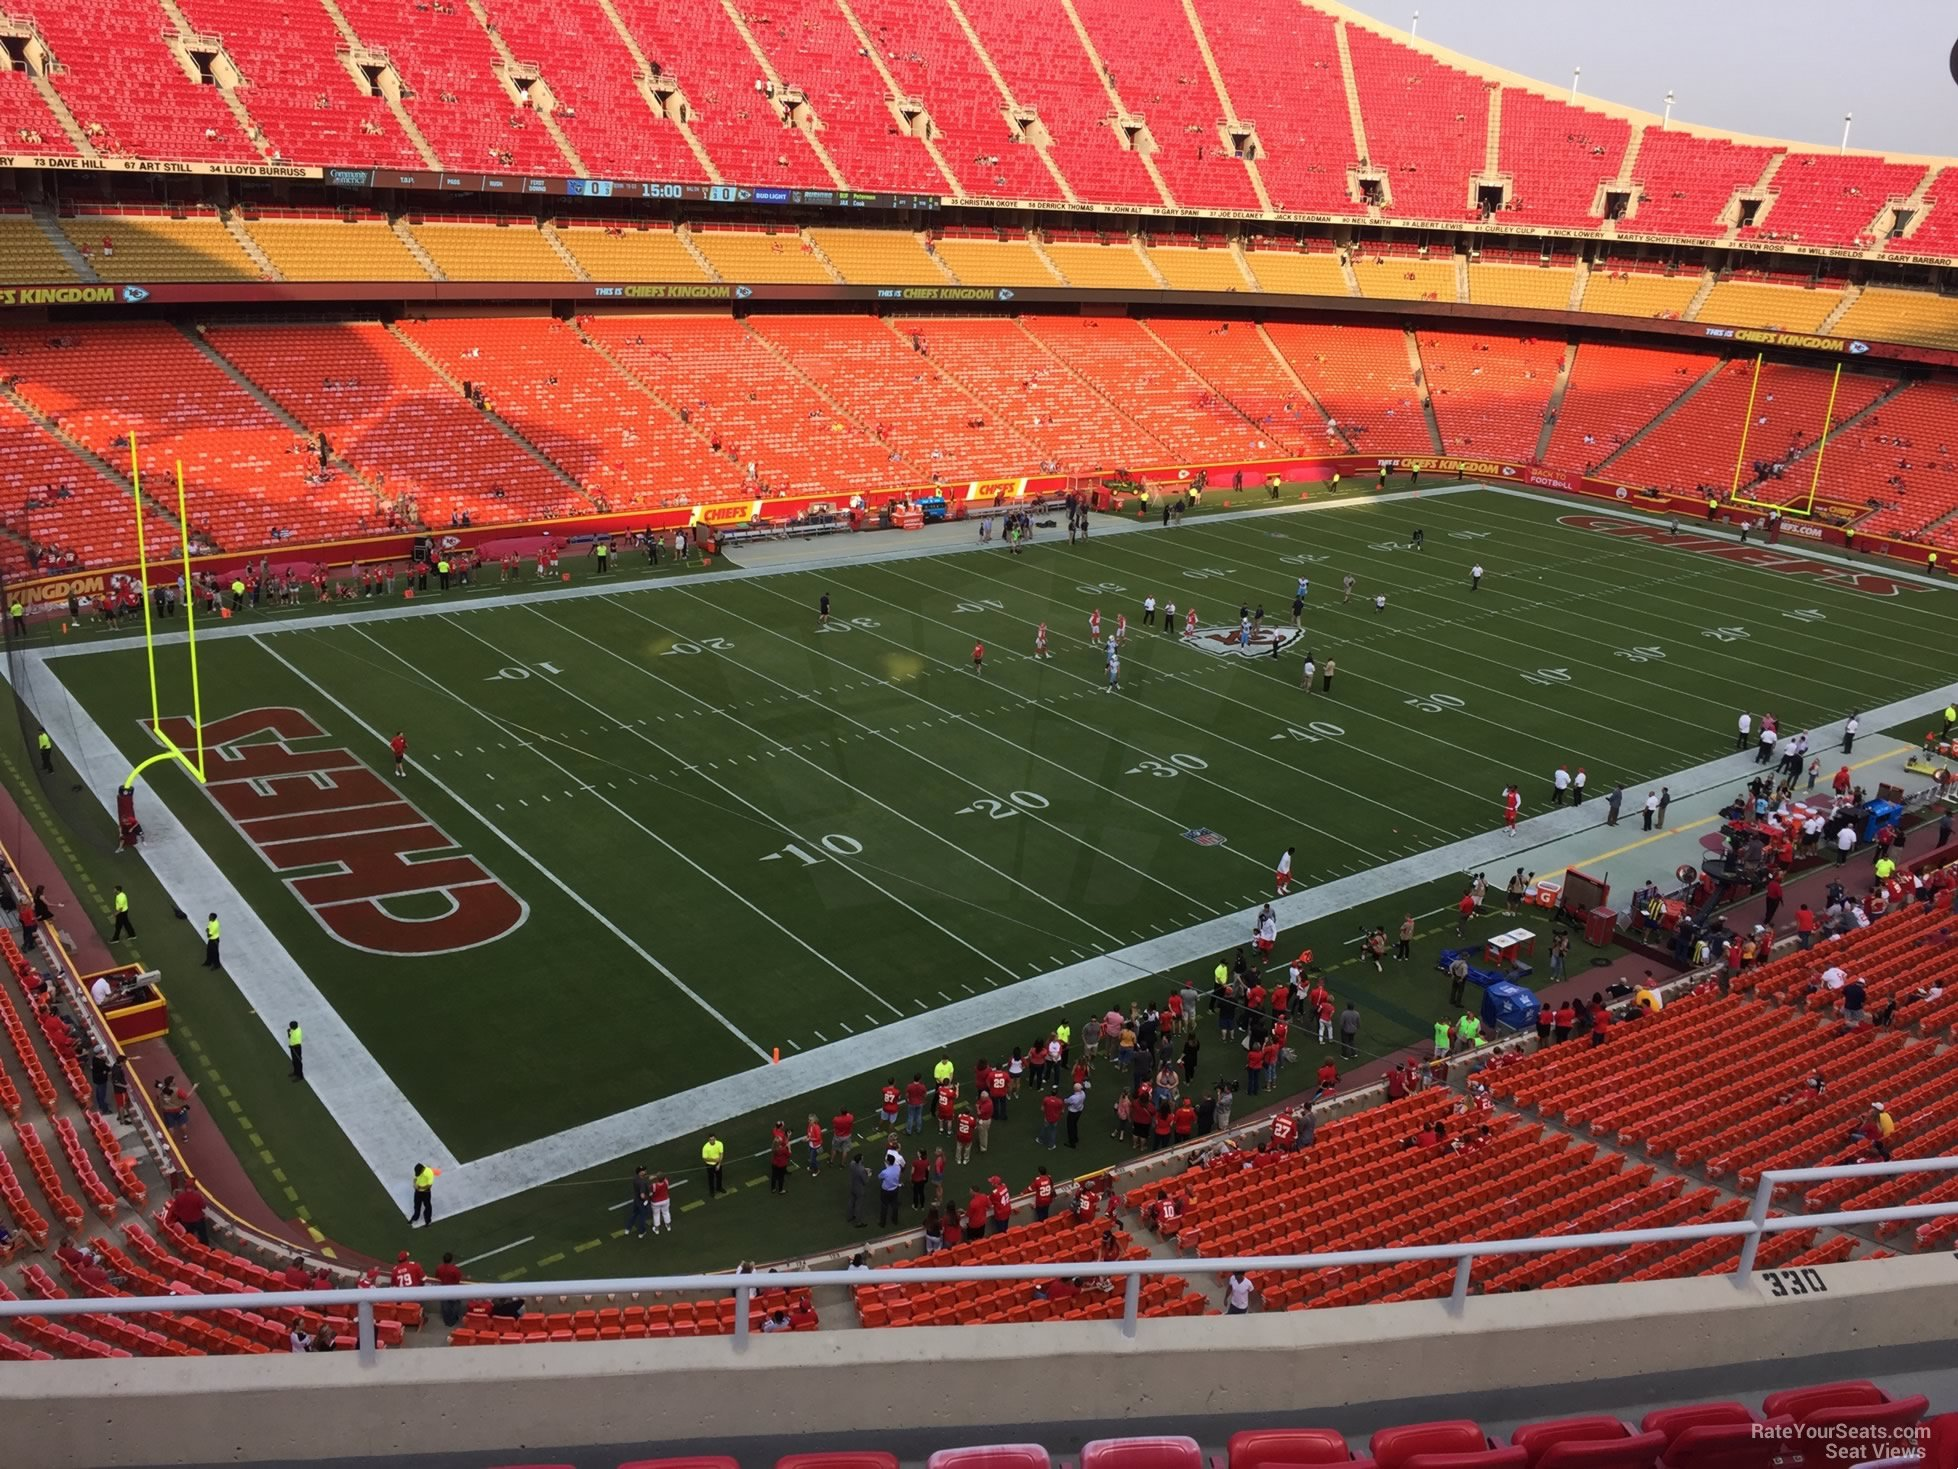 Seat View for Arrowhead Stadium Section 330, Row 7